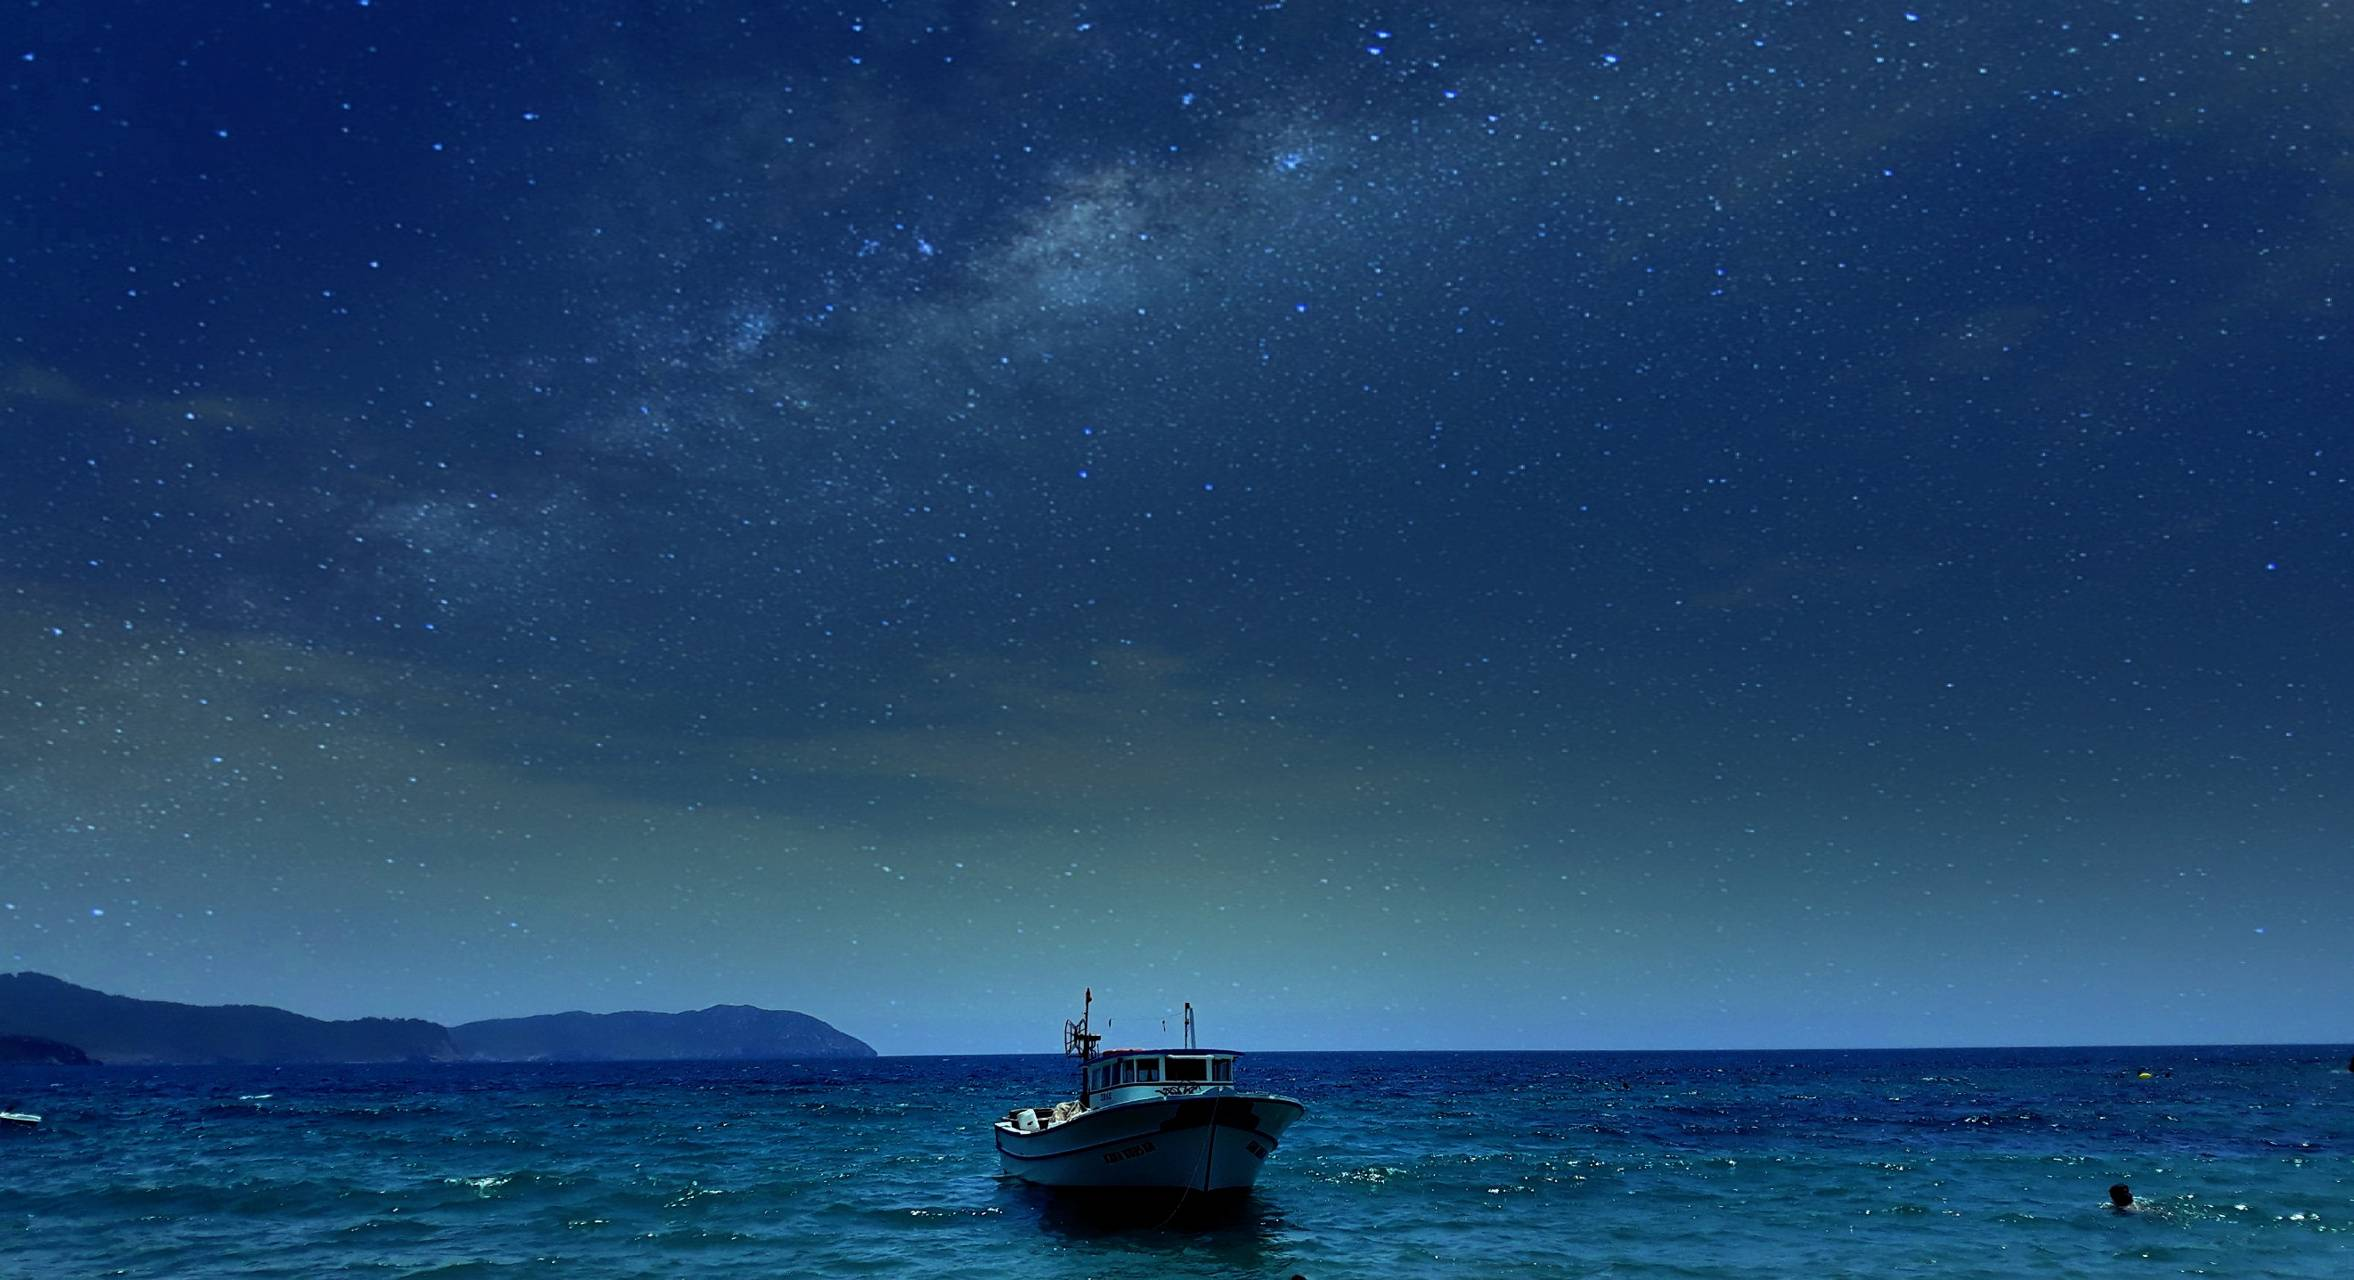 yacht with stars